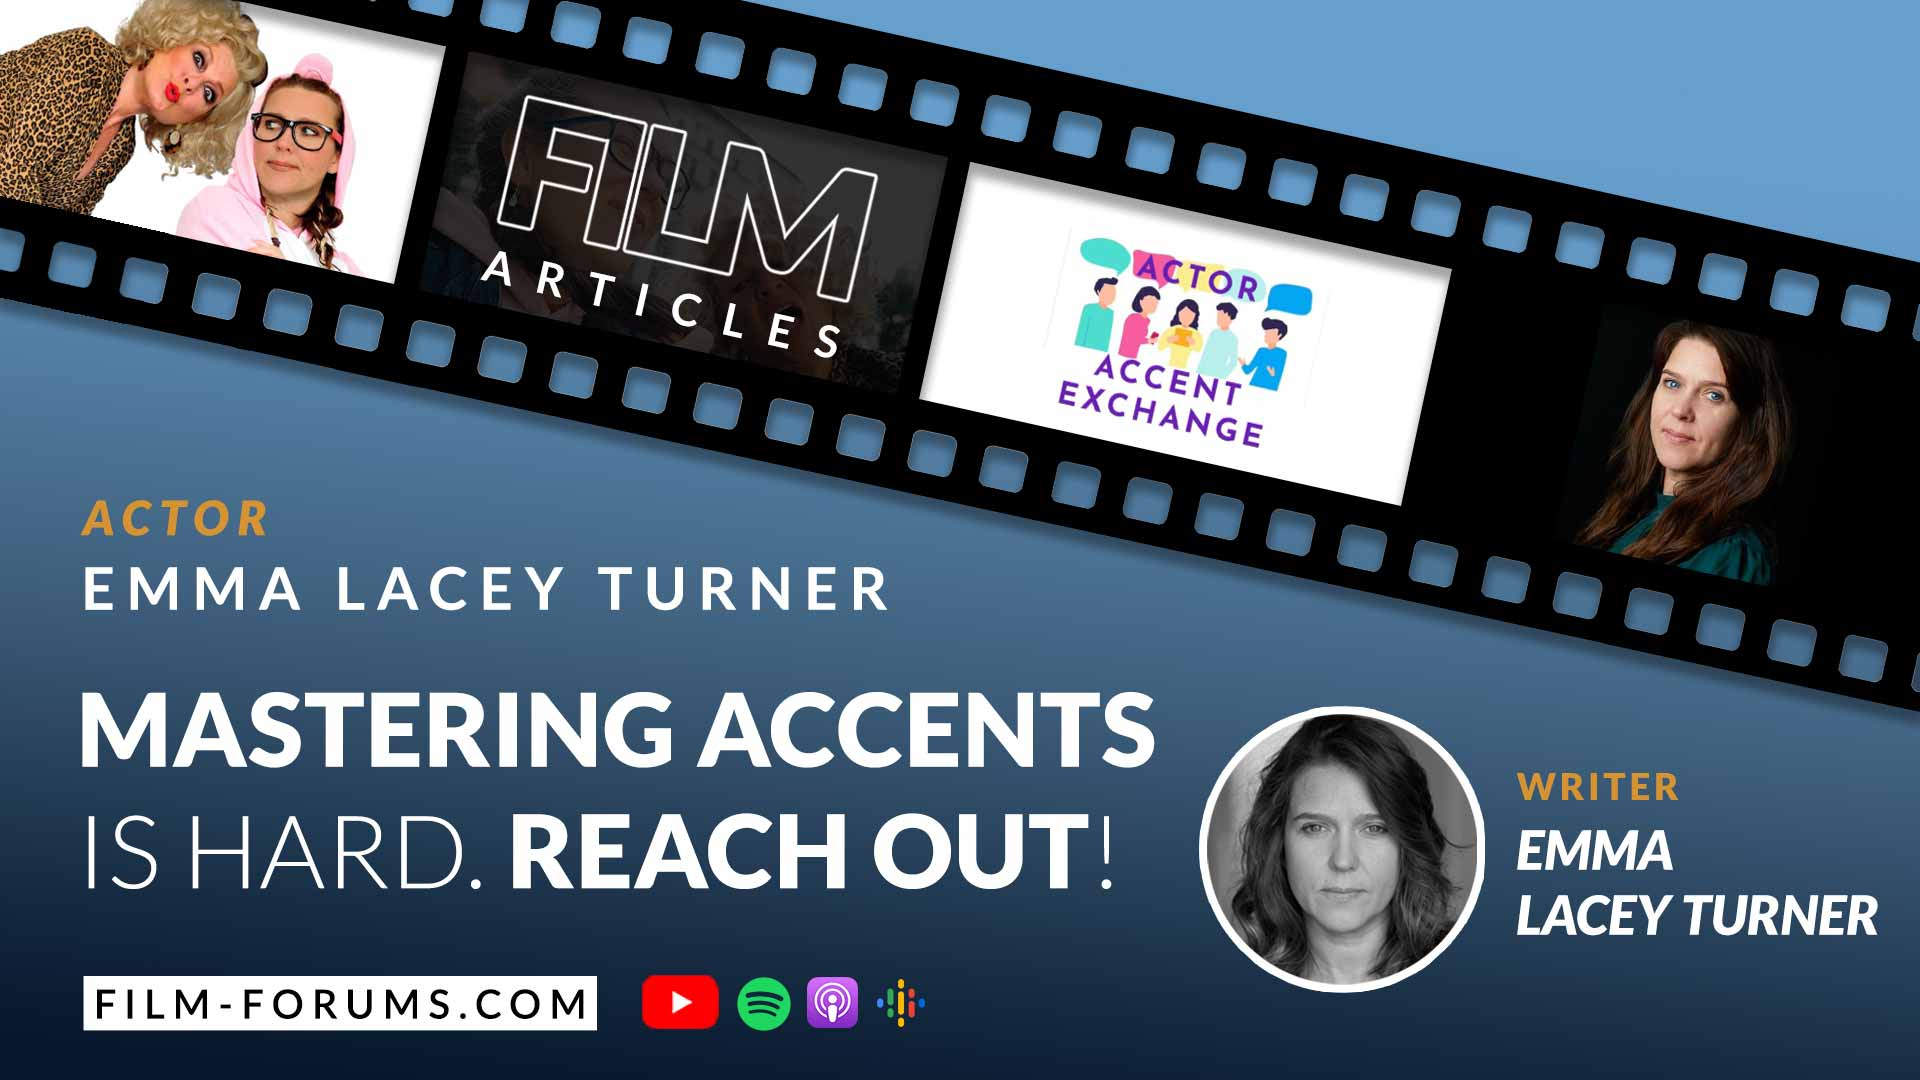 The Actor Accent Exchange by Emma Lacey Turner